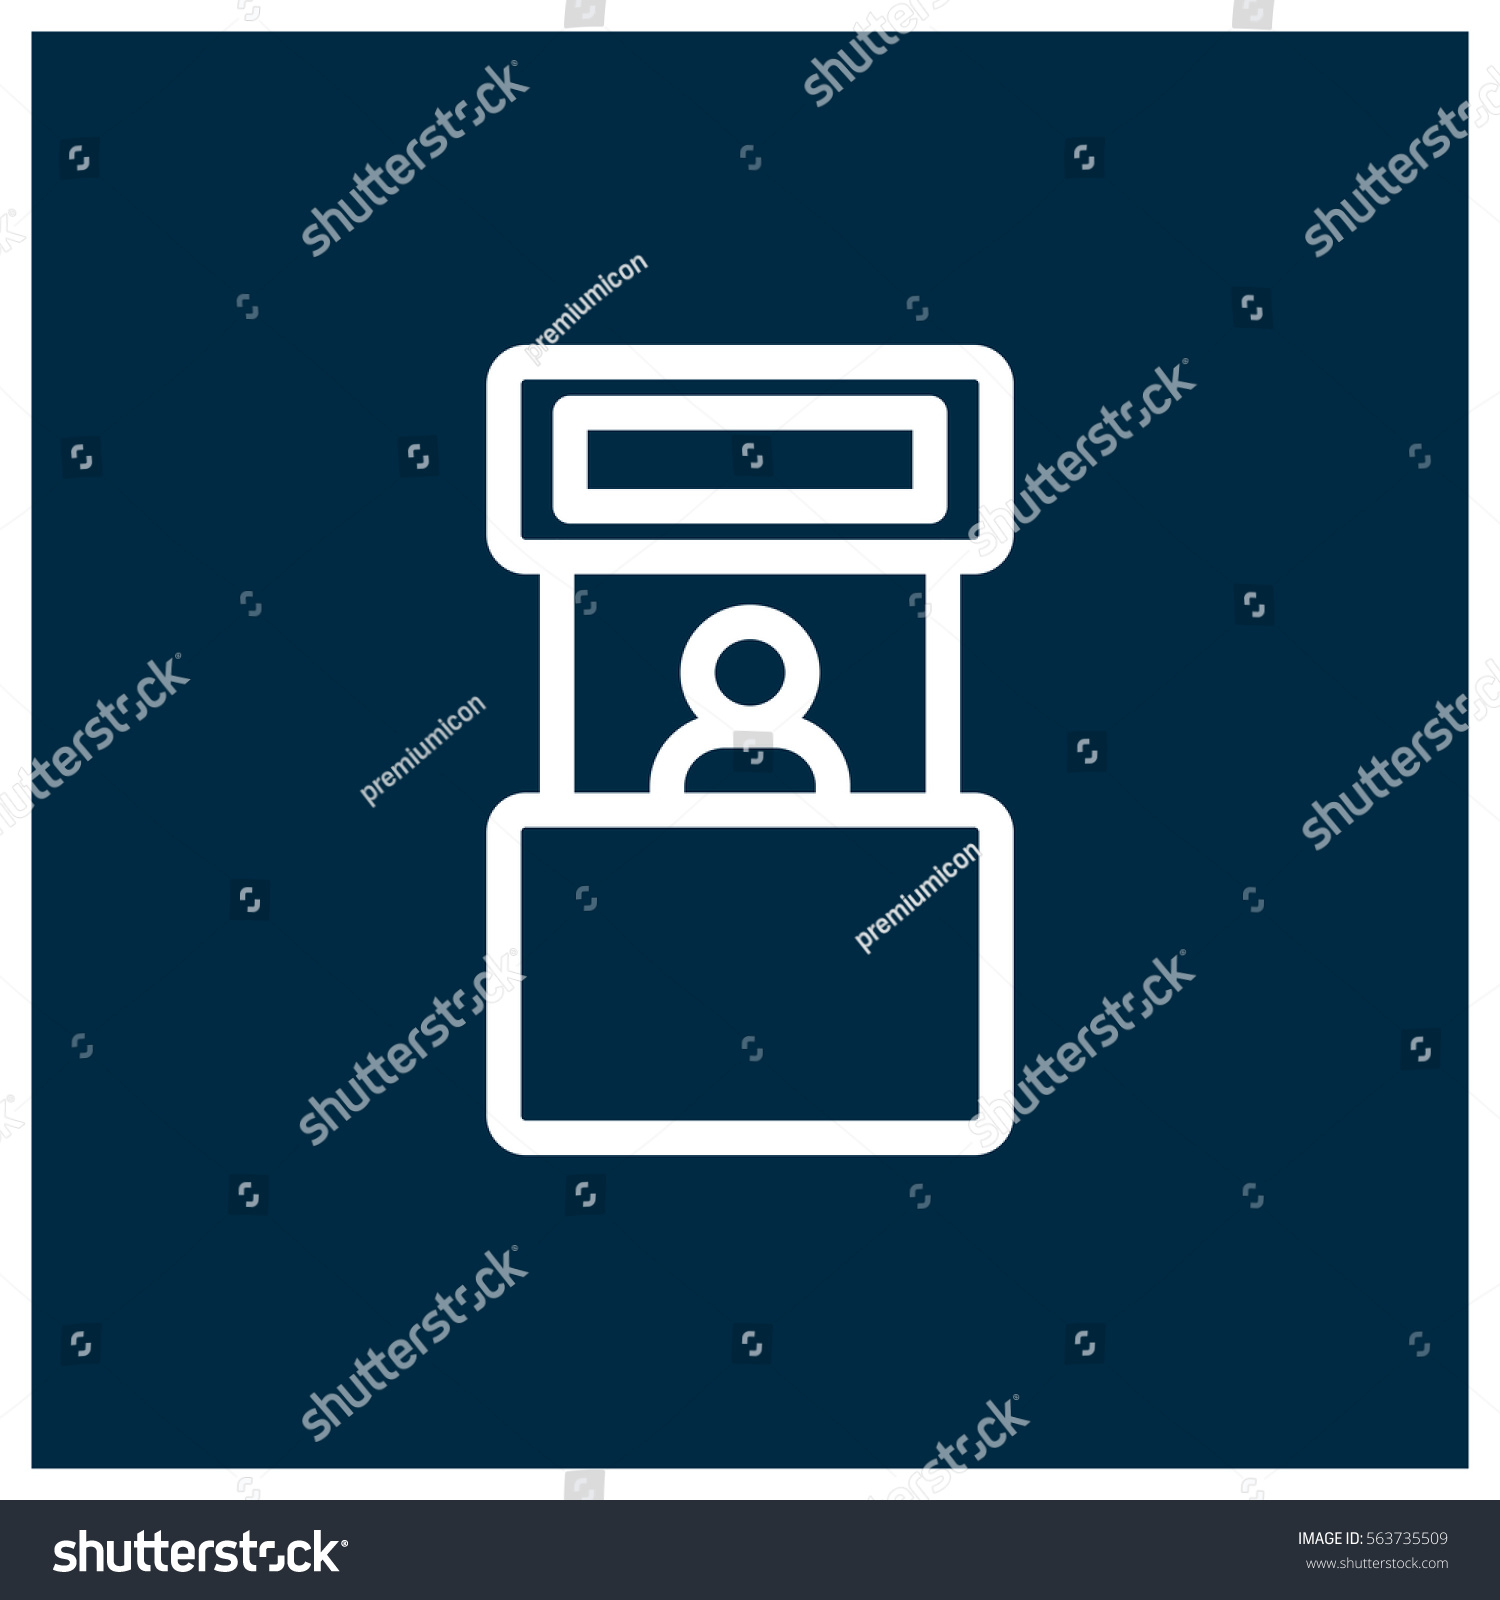 Simple Exhibition Stand Vector : Promo stand vector icon exhibition symbol stock